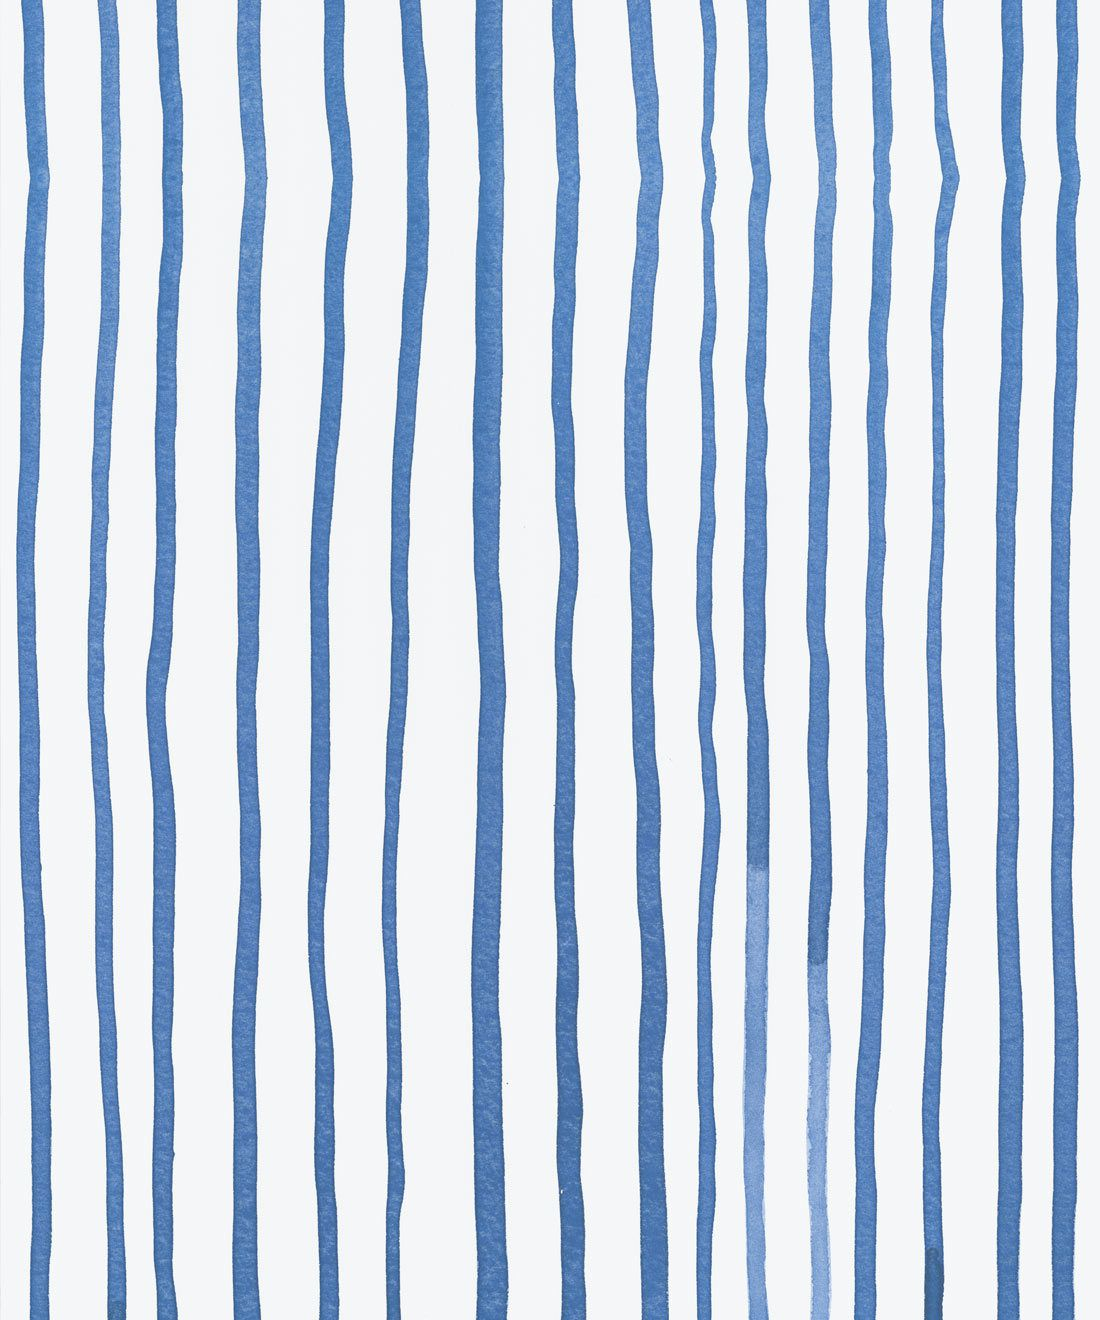 Zighy Stripes • Striped Wallpaper • Blue Stripes • Milton & King Europe • Georgia MacMillan